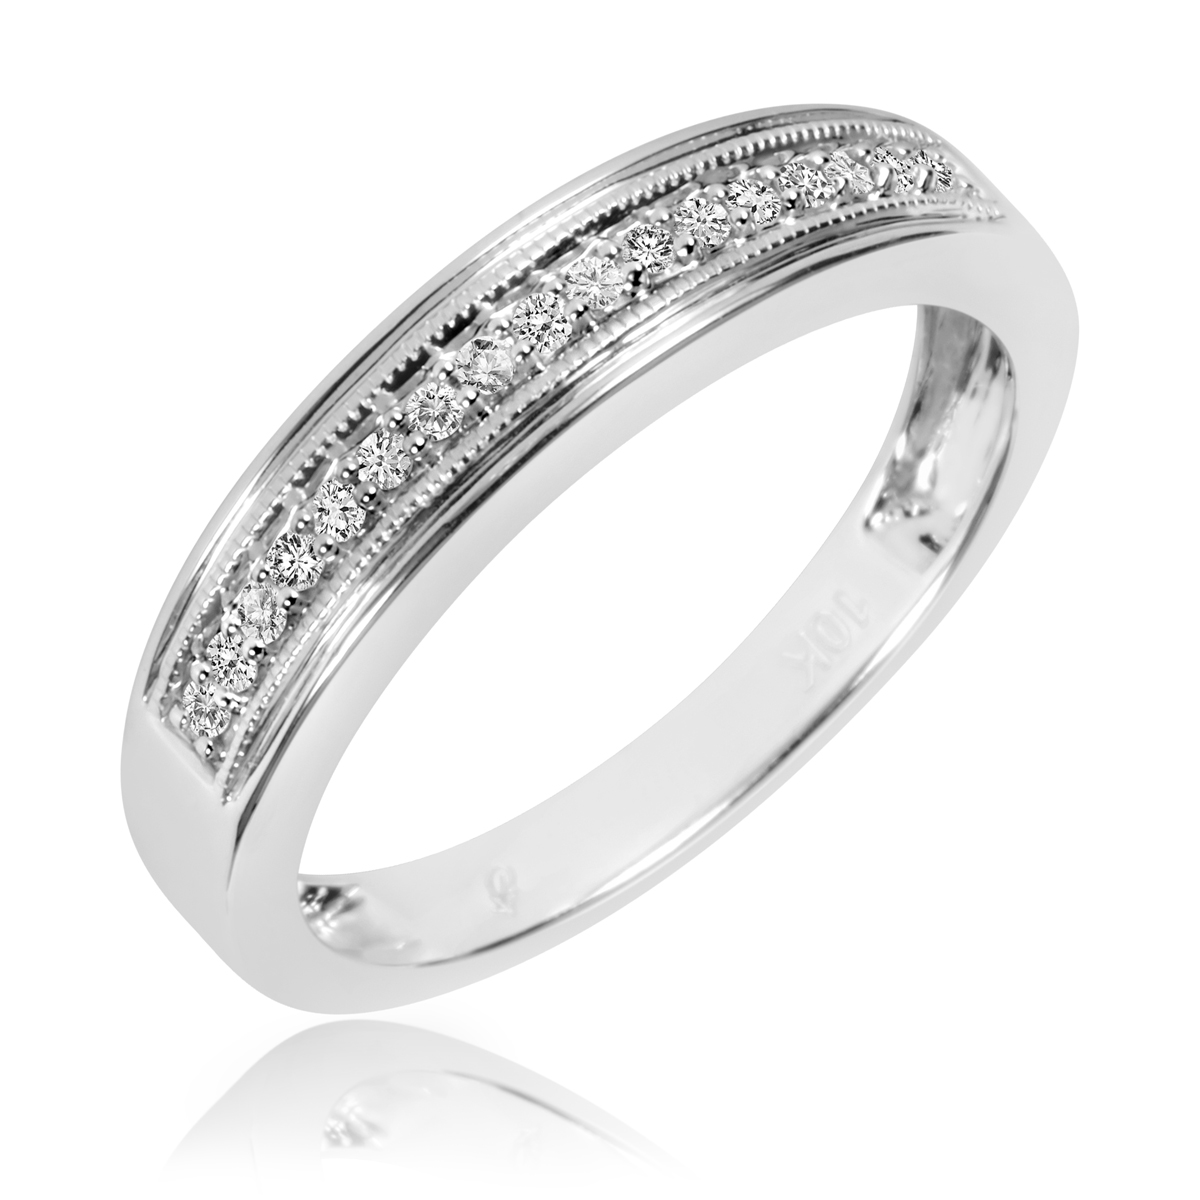 1 6 Carat TW Diamond Mens Wedding Band 10K White Gold